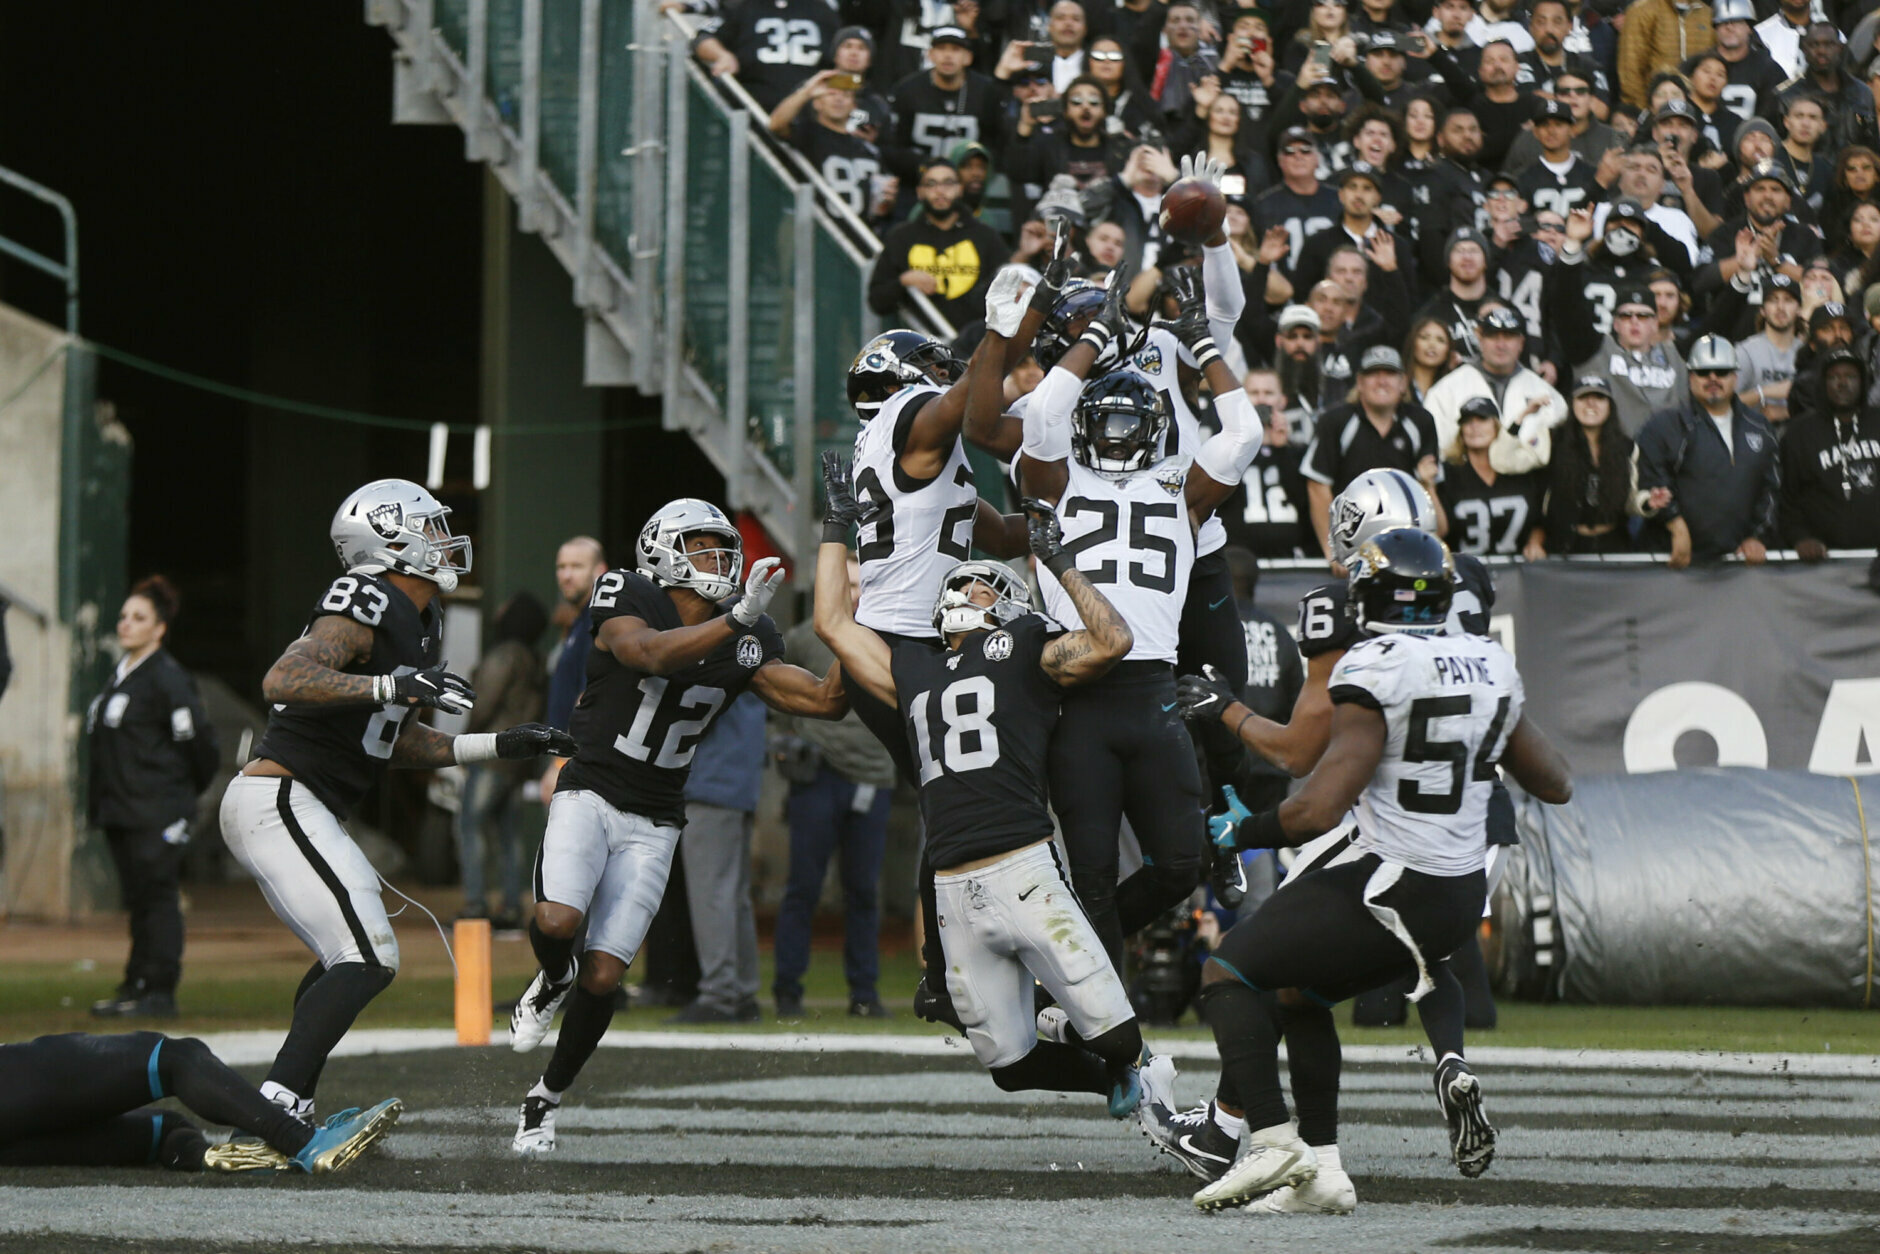 "<p><b><i>Jaguars 20</i></b><br /> <b><i>Raiders 16</i></b></p> <p><a href=""https://www.raiders.com/video/nfl-100-greatest-no-17-the-sea-of-hands"" target=""_blank"" rel=""noopener"">The Sea of Hands</a> didn&#8217;t happen in Oakland one last time, as the Raiders lost their final game at Oakland Coliseum thanks to <a href=""https://twitter.com/ESPNStatsInfo/status/1206371703007383552?s=20"" target=""_blank"" rel=""noopener"">Gardner Minshew&#8217;s late-game heroics</a> amid <a href=""https://profootballtalk.nbcsports.com/2019/12/15/gardner-minshew-i-saw-more-middle-fingers-in-oakland-than-i-had-in-my-whole-life/"" target=""_blank"" rel=""noopener"">a sea of fingers</a>. The Silver and Black&#8217;s Bay Area bye-bye may have sucked but Minshew Magic certainly does not.</p>"